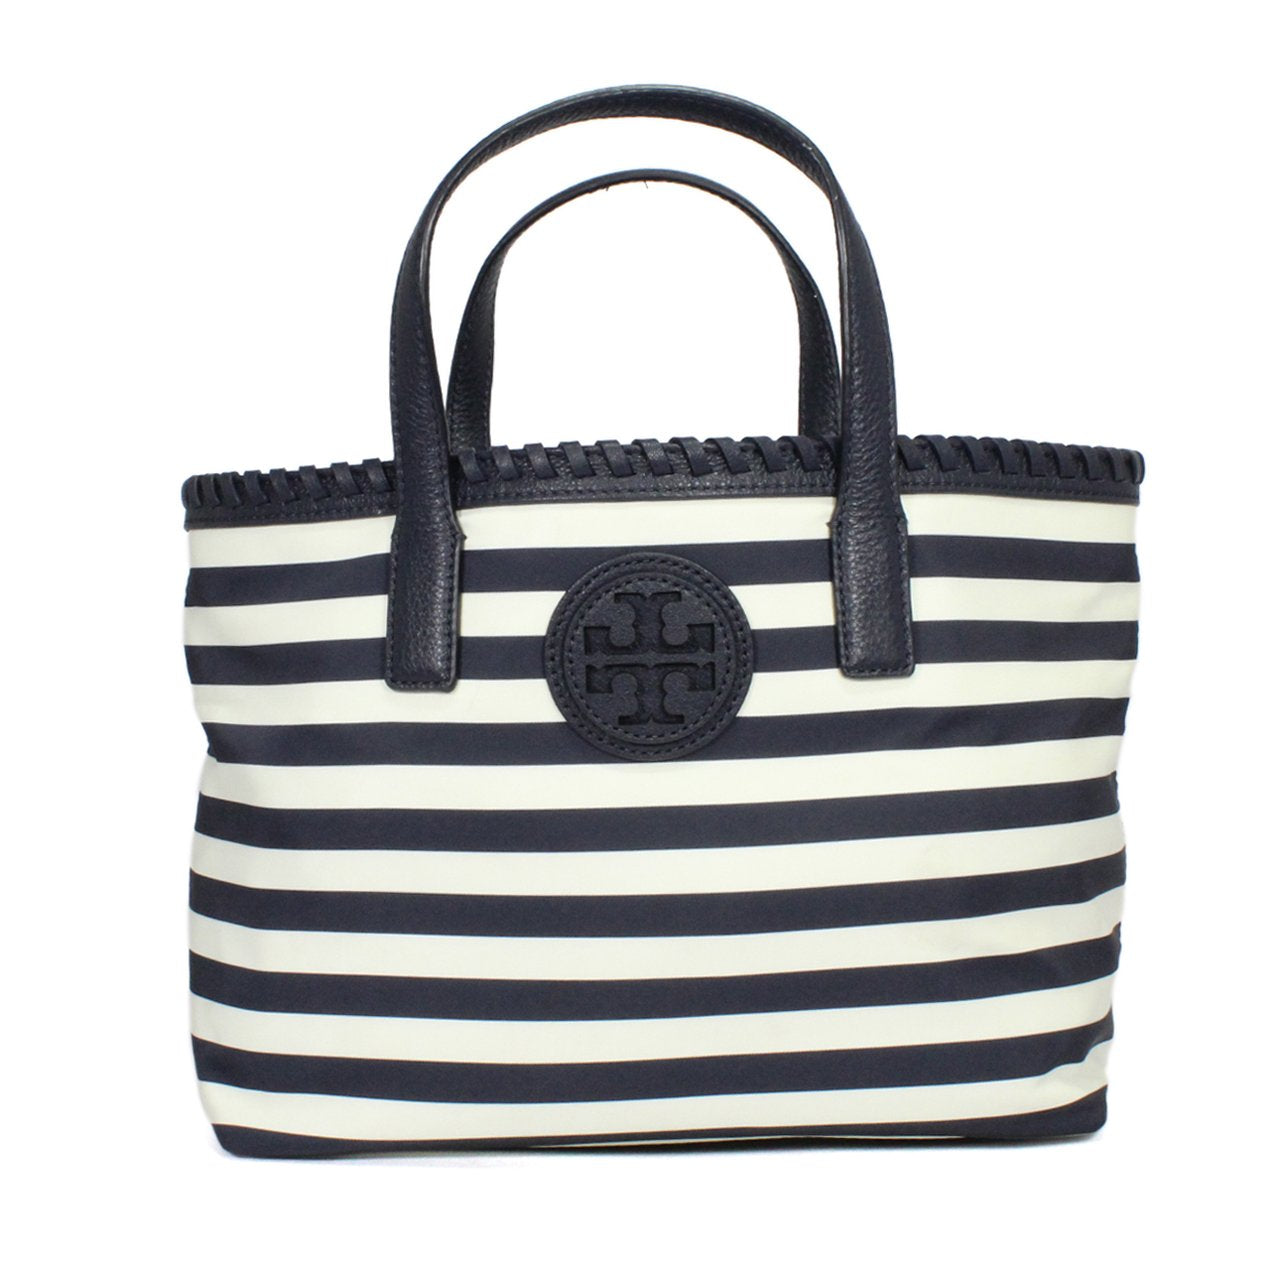 Tory Burch Marion Printed Nylon East / West Tote